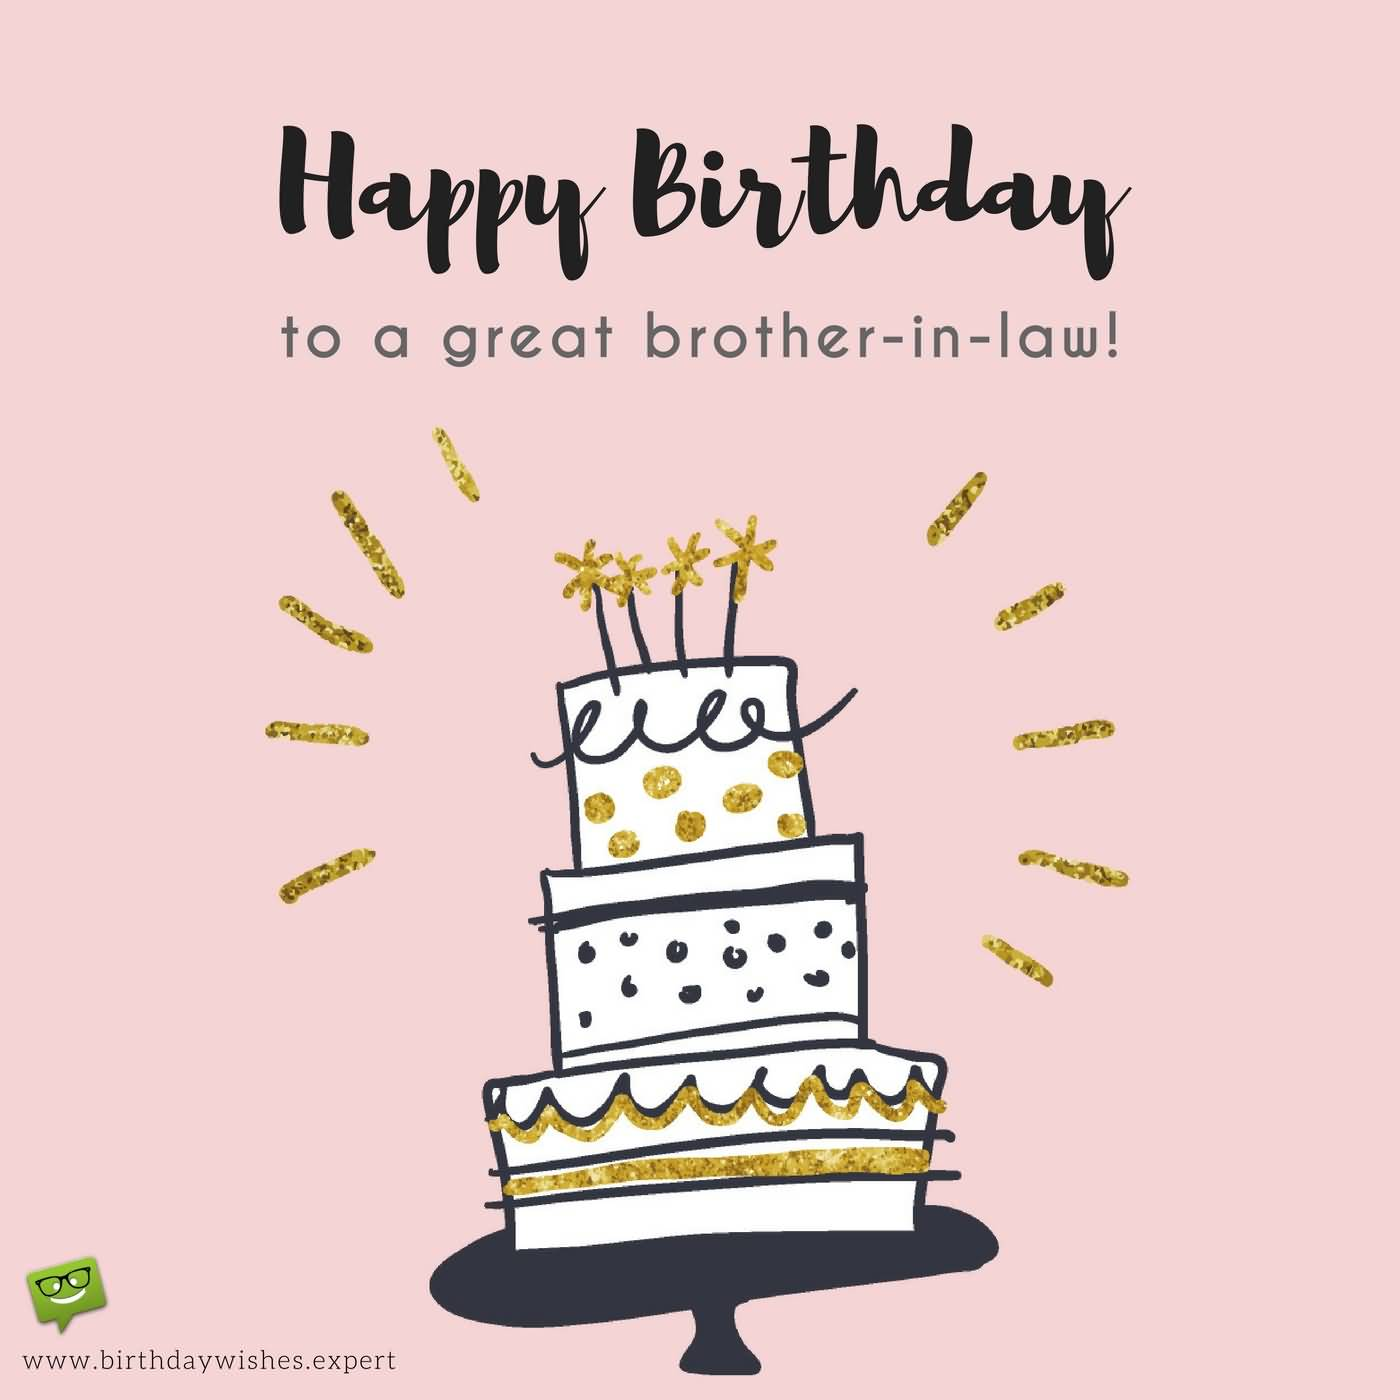 Brother in law birthday wishes funny segerios segerios happy birthday to a great brother in law voltagebd Choice Image